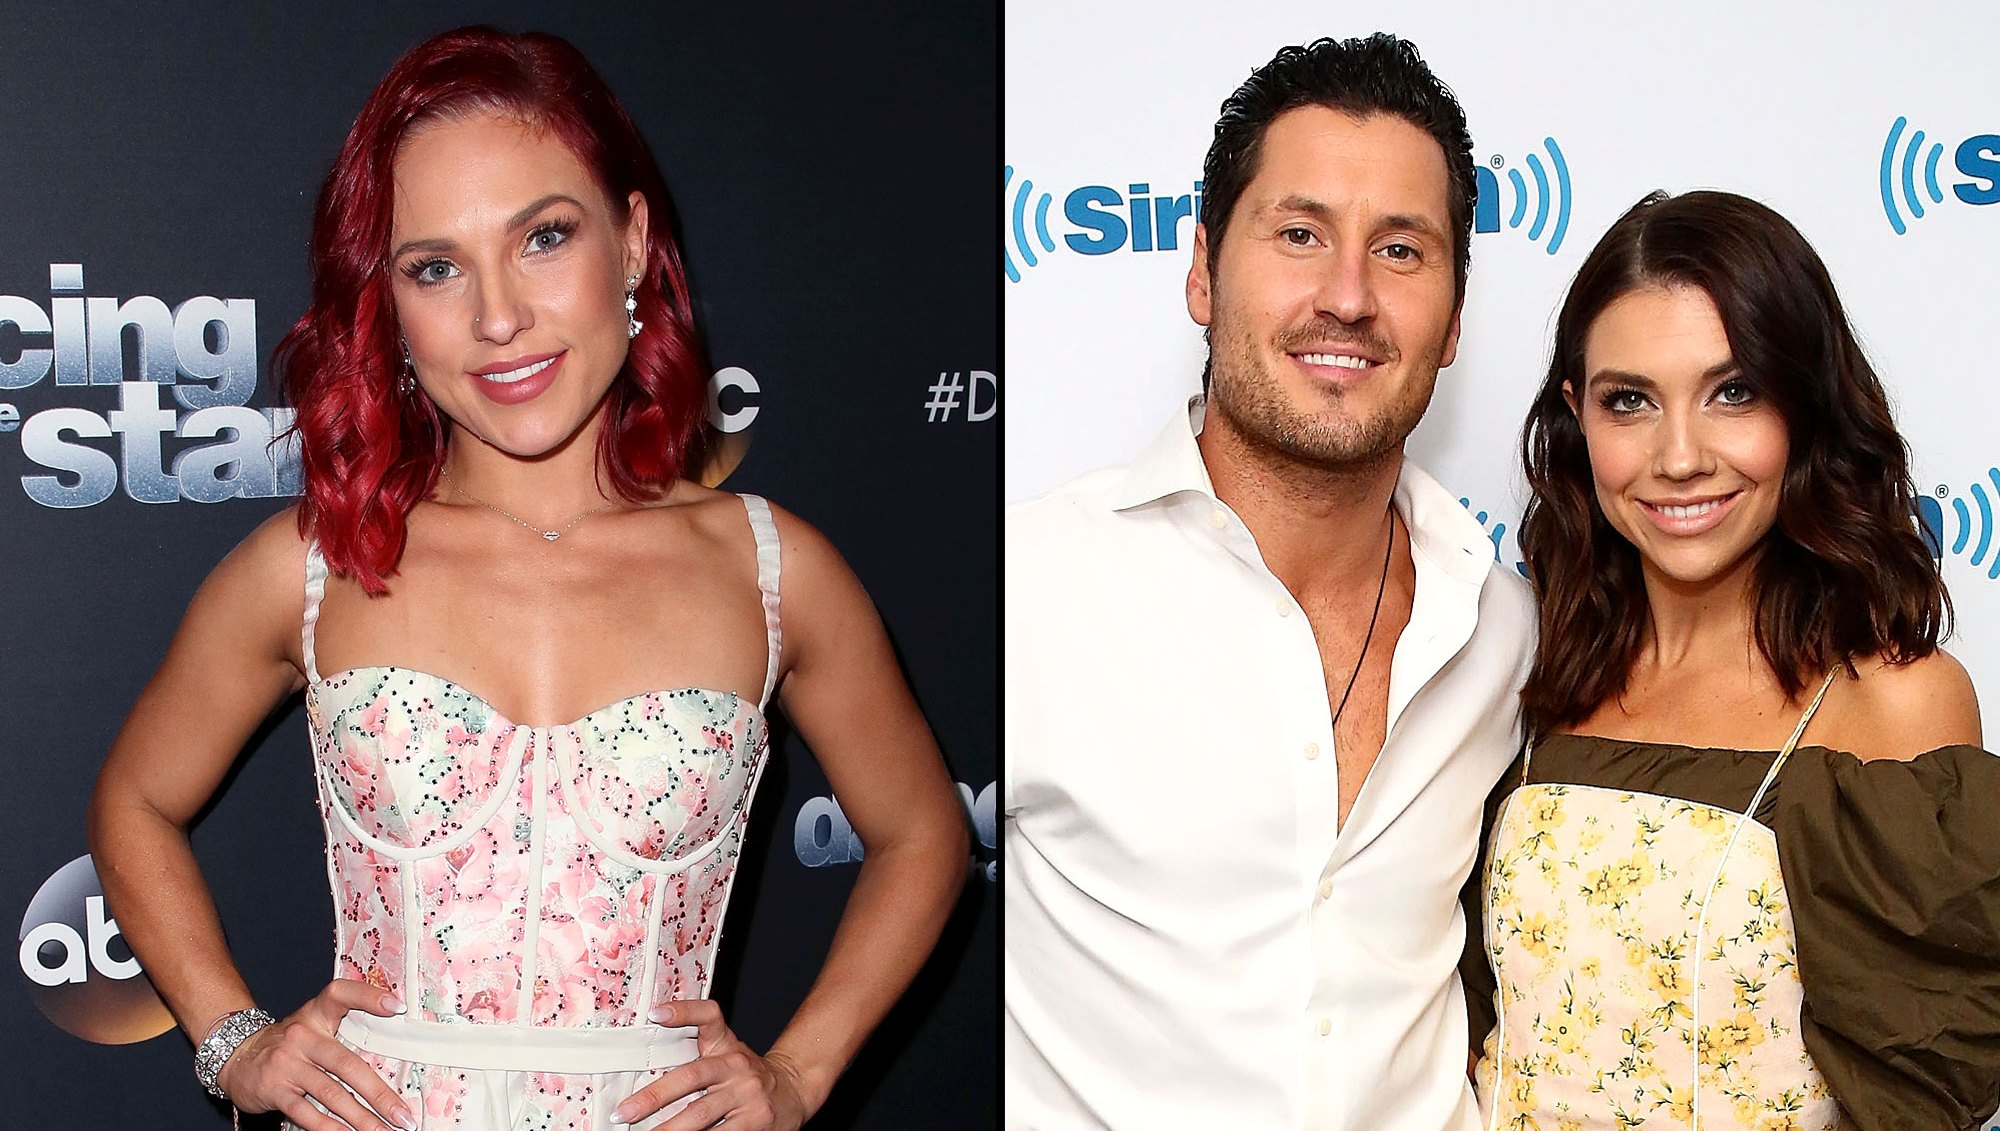 Dancing-With-the-Stars-Sharna-Burgess--Val-Chmerkovisky-and-Jenna-Johnsons-Wedding-Will-Be-One-for-the-Books